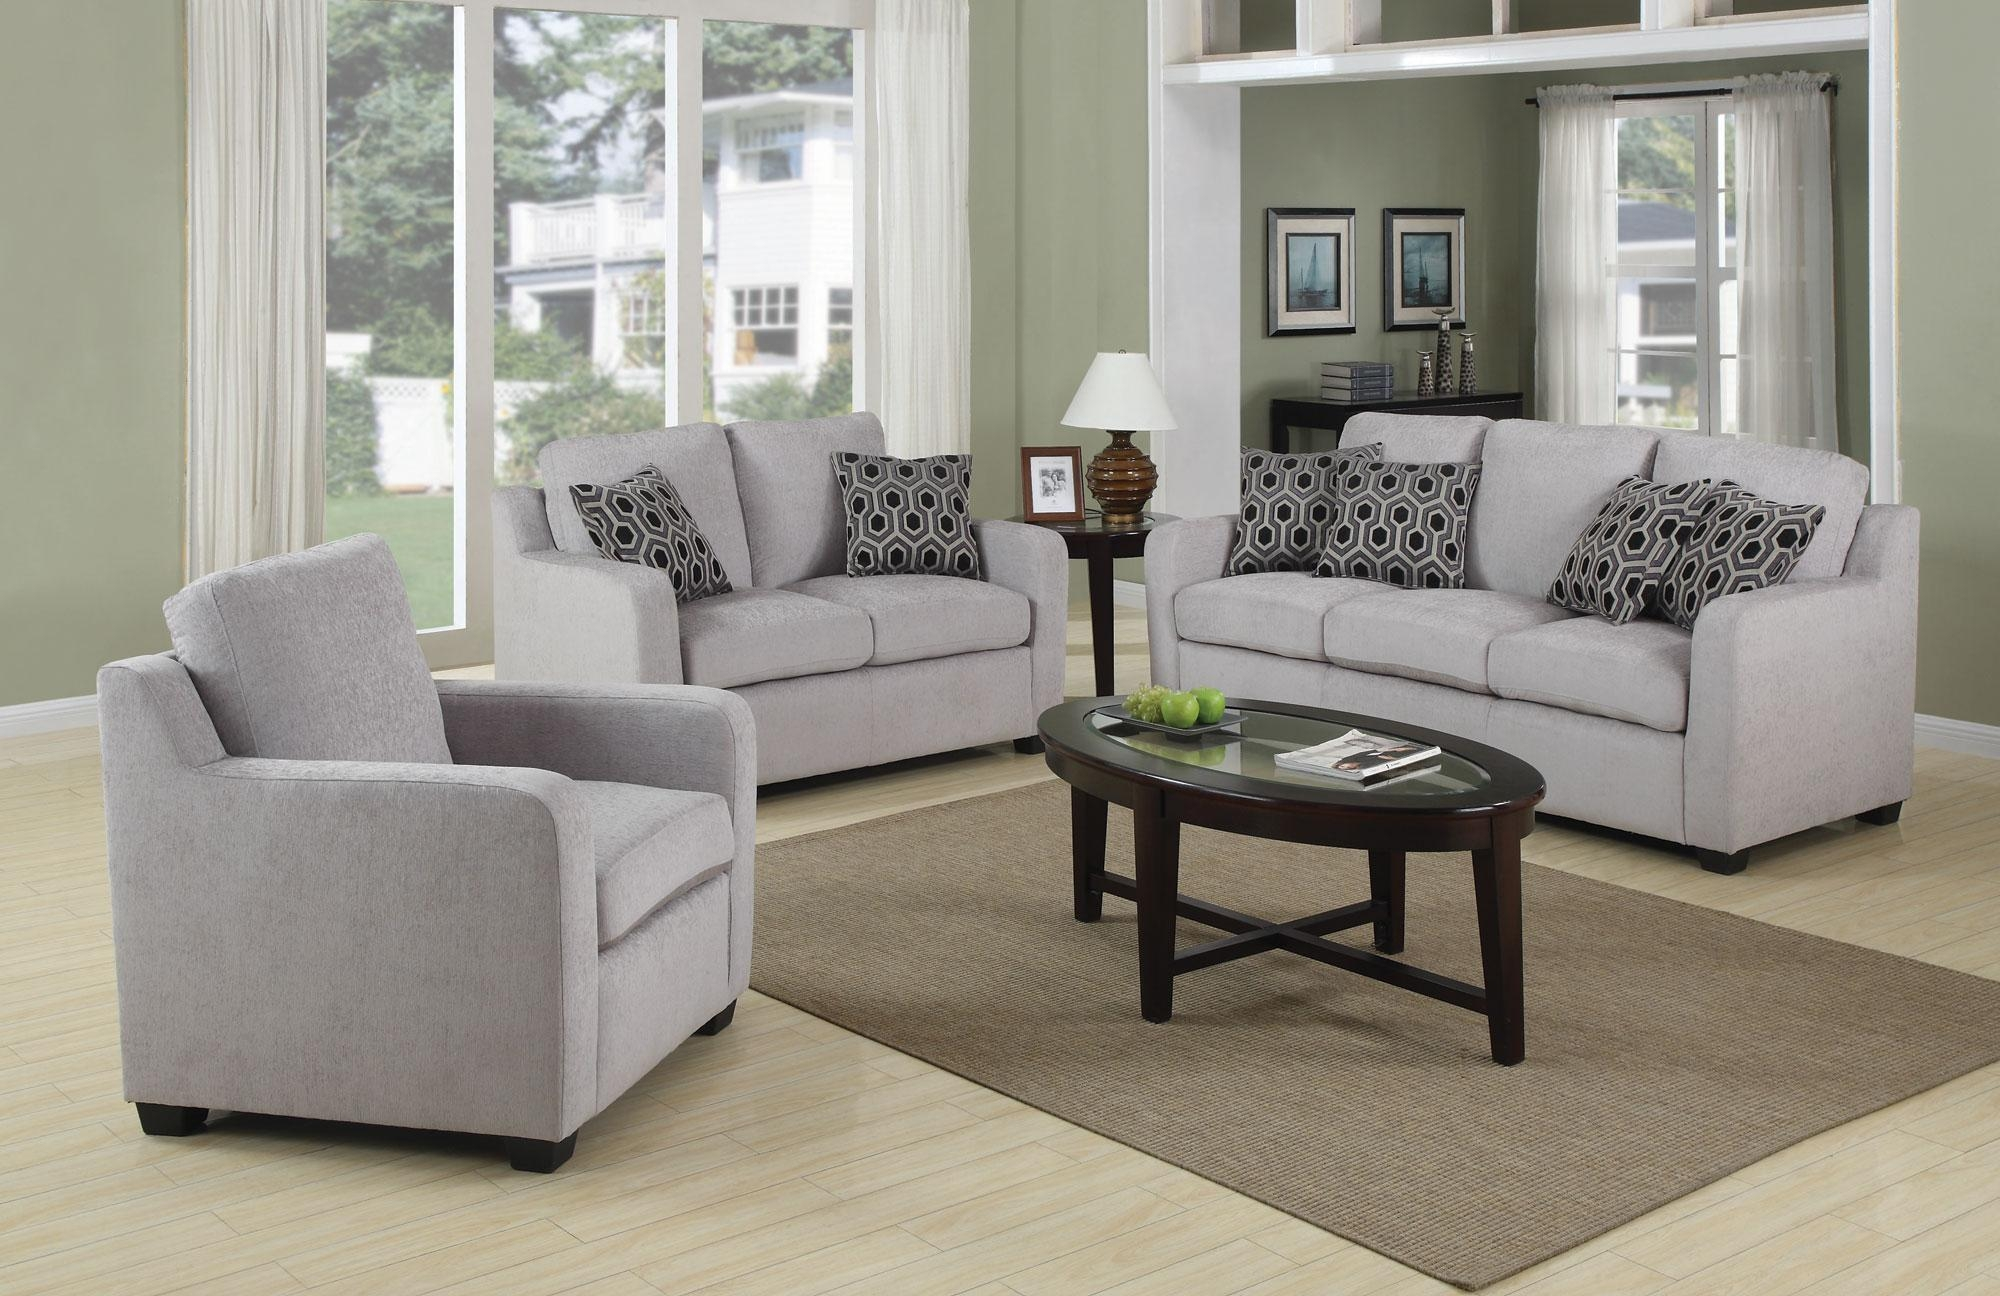 Furniture: Amazing Set Of Chairs For Living Room Cheap Couches Inside Sofa Chairs For Living Room (View 11 of 20)